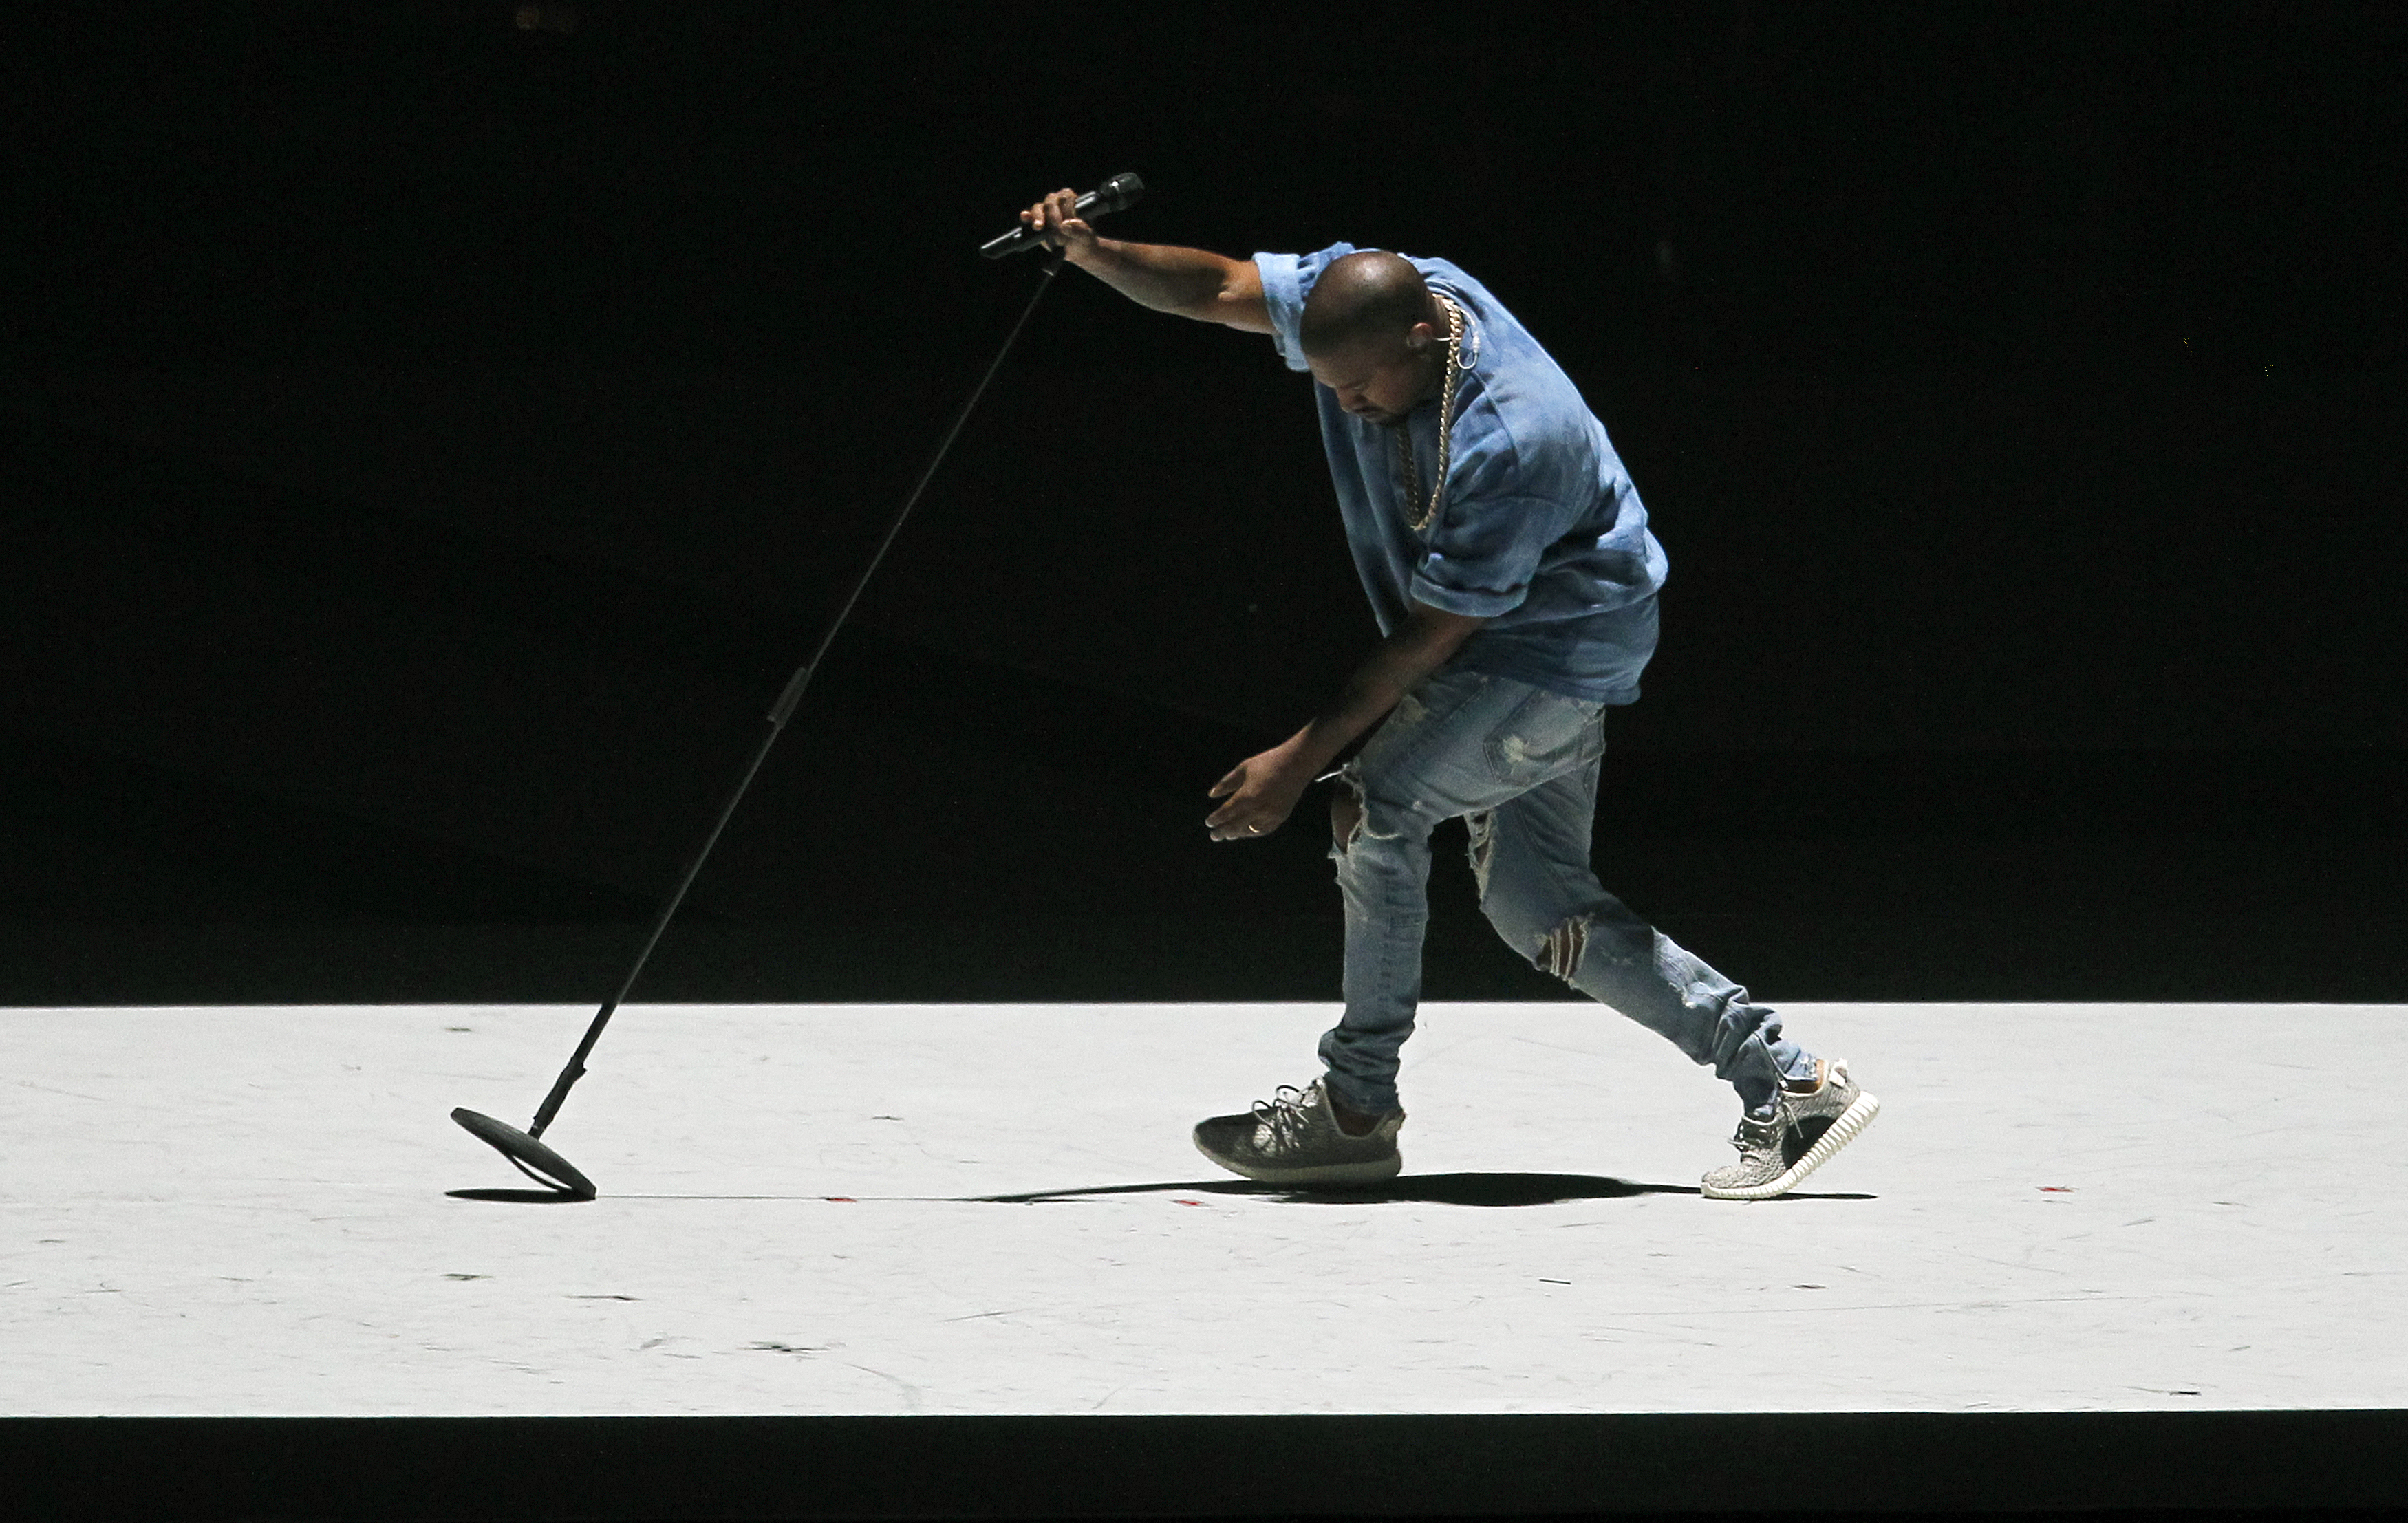 Singer Kanye West performs during the closing ceremony at the Toronto 2015 PanAm Games in Toronto